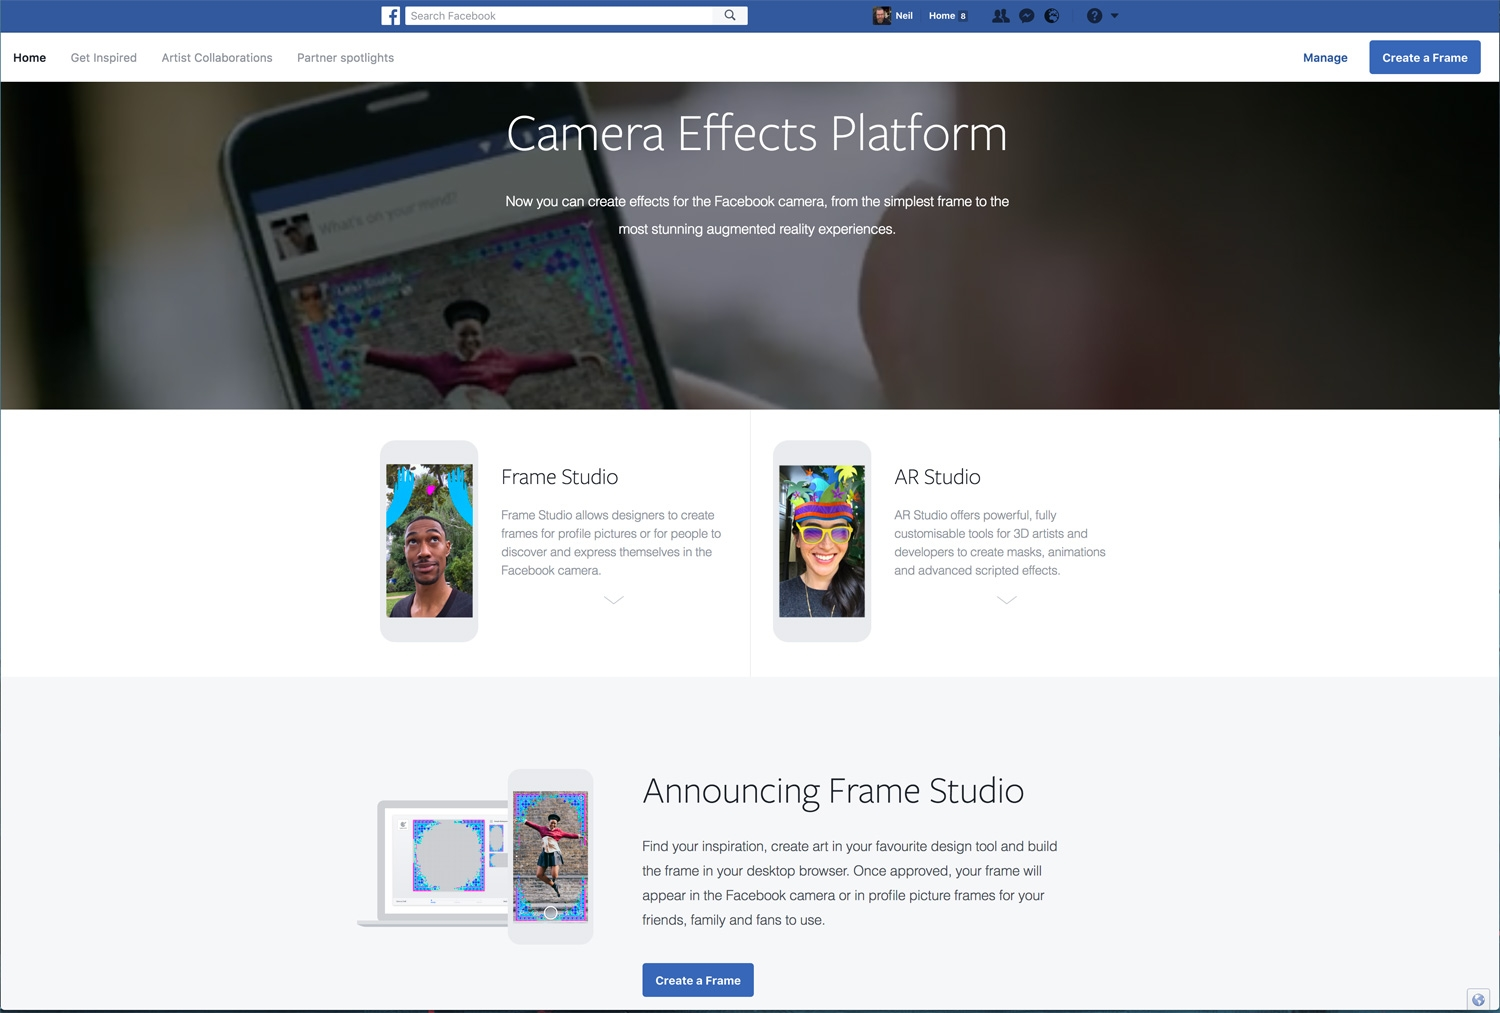 How To Turn Your Art And Designs Into Facebook Camera